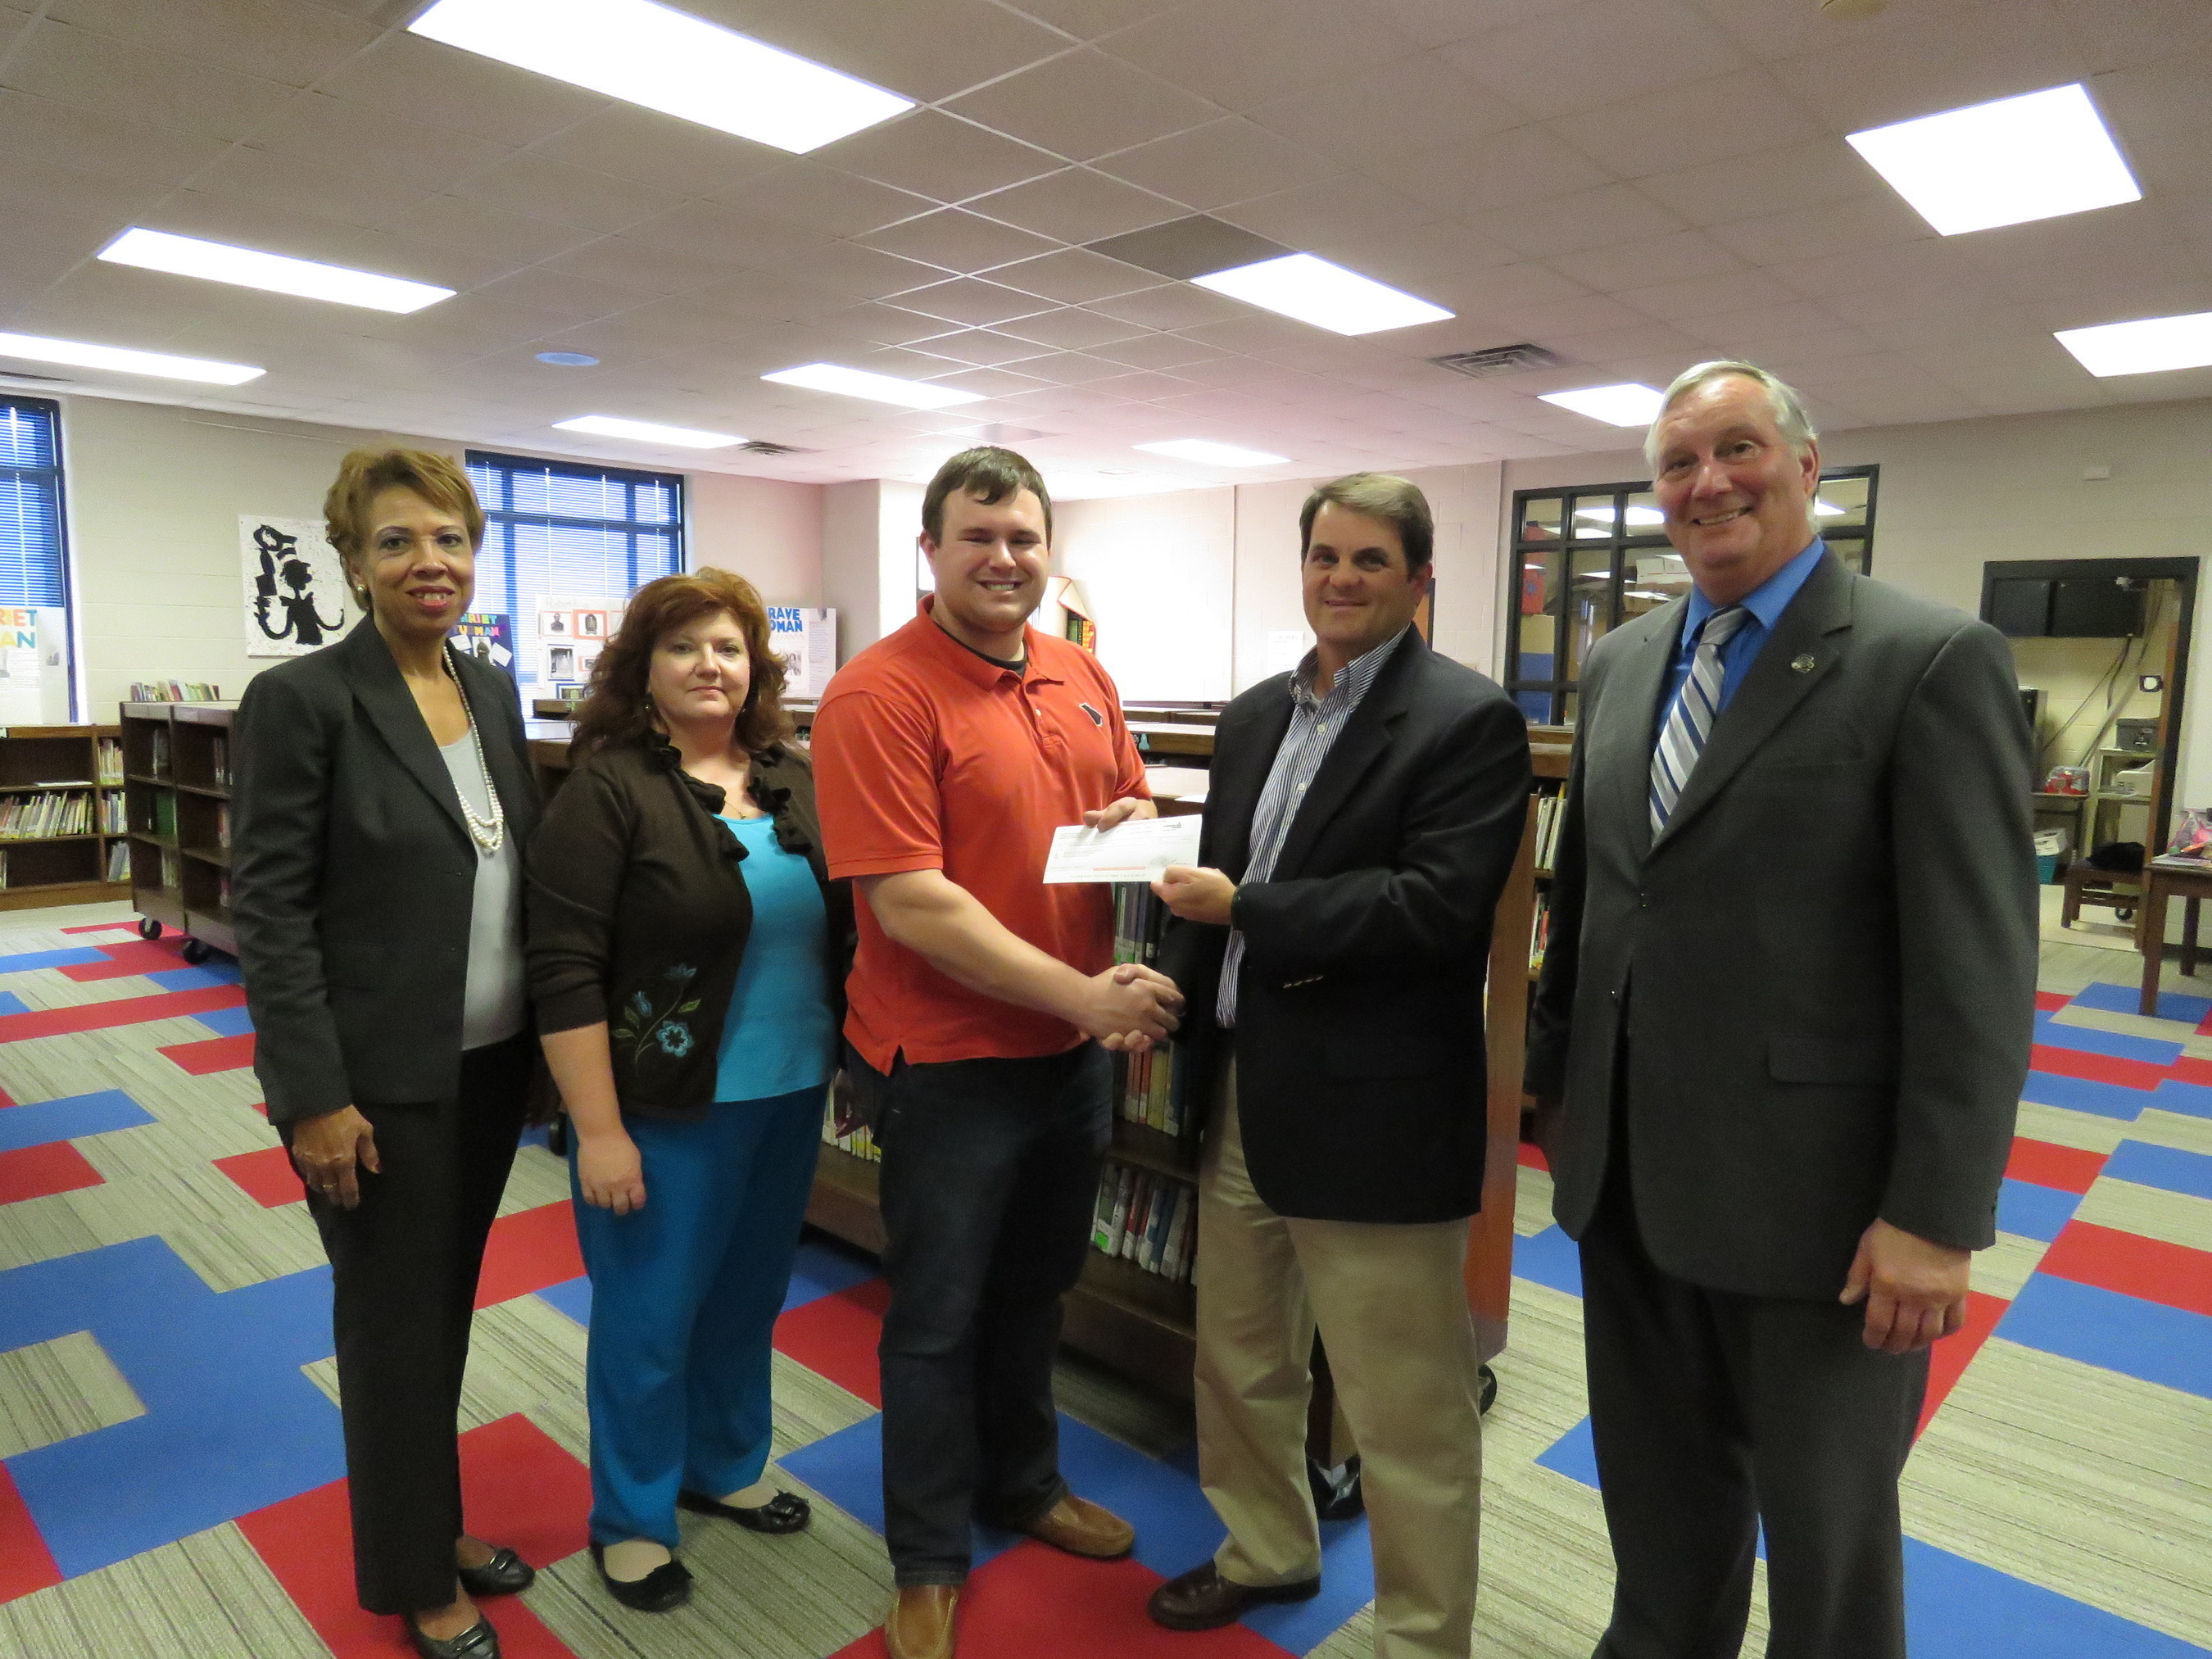 Georgia Power announced the selection of 41 new teachers from across the state to receive one of the company's annual $1,000 New Teacher Assistance Grants. Pictured is Caleb McKeever, of Milledgeville receiving his New Teacher Assistance Grant check.